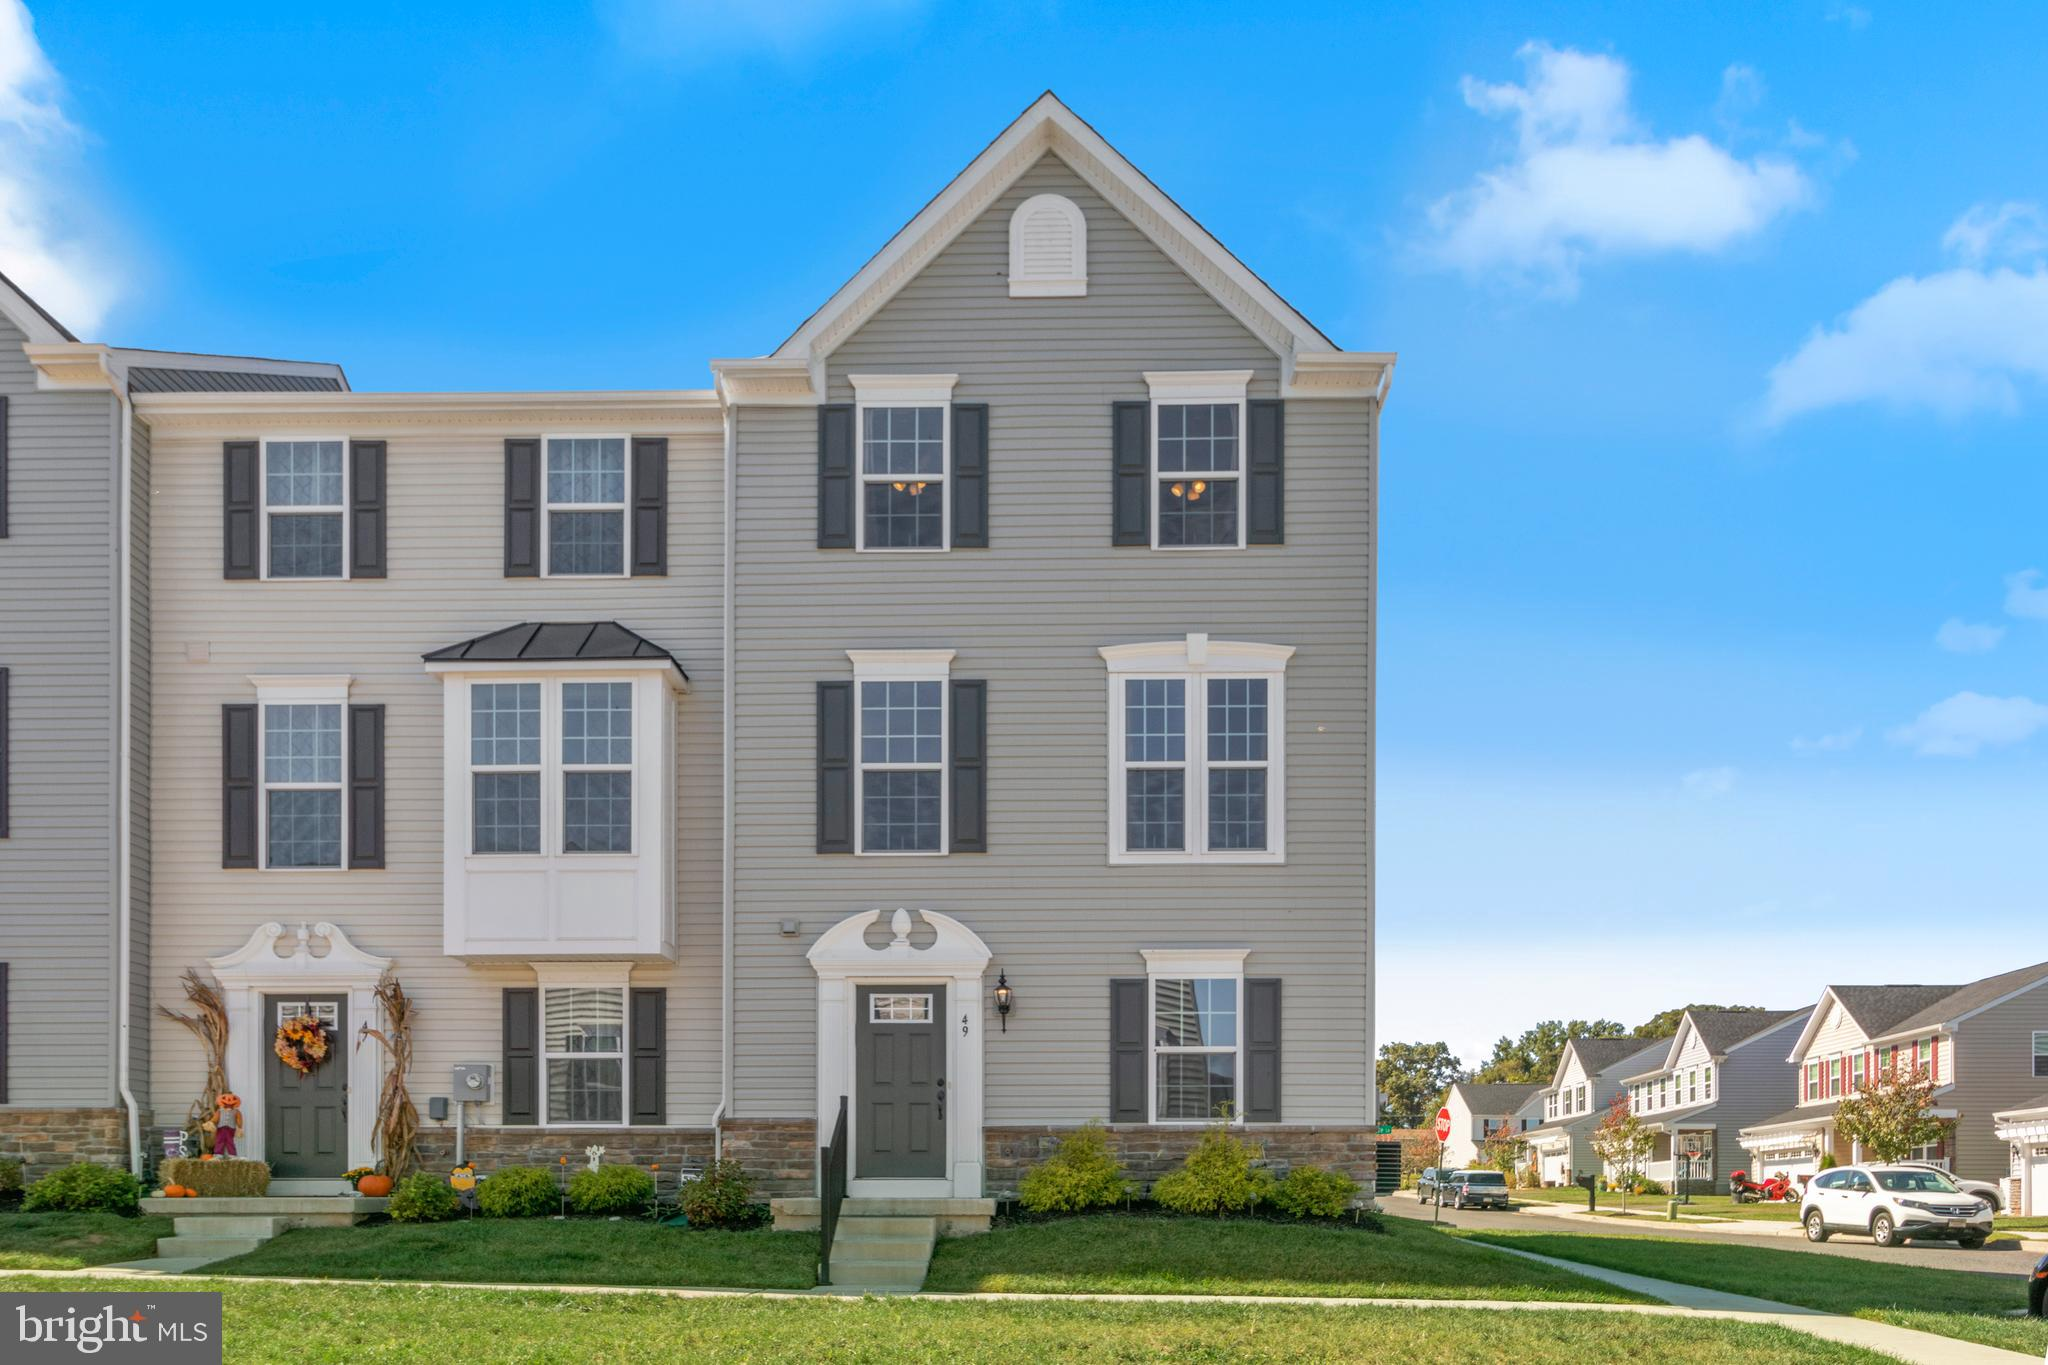 49 MULBERRY GREEN, SPRING CITY, PA 19475